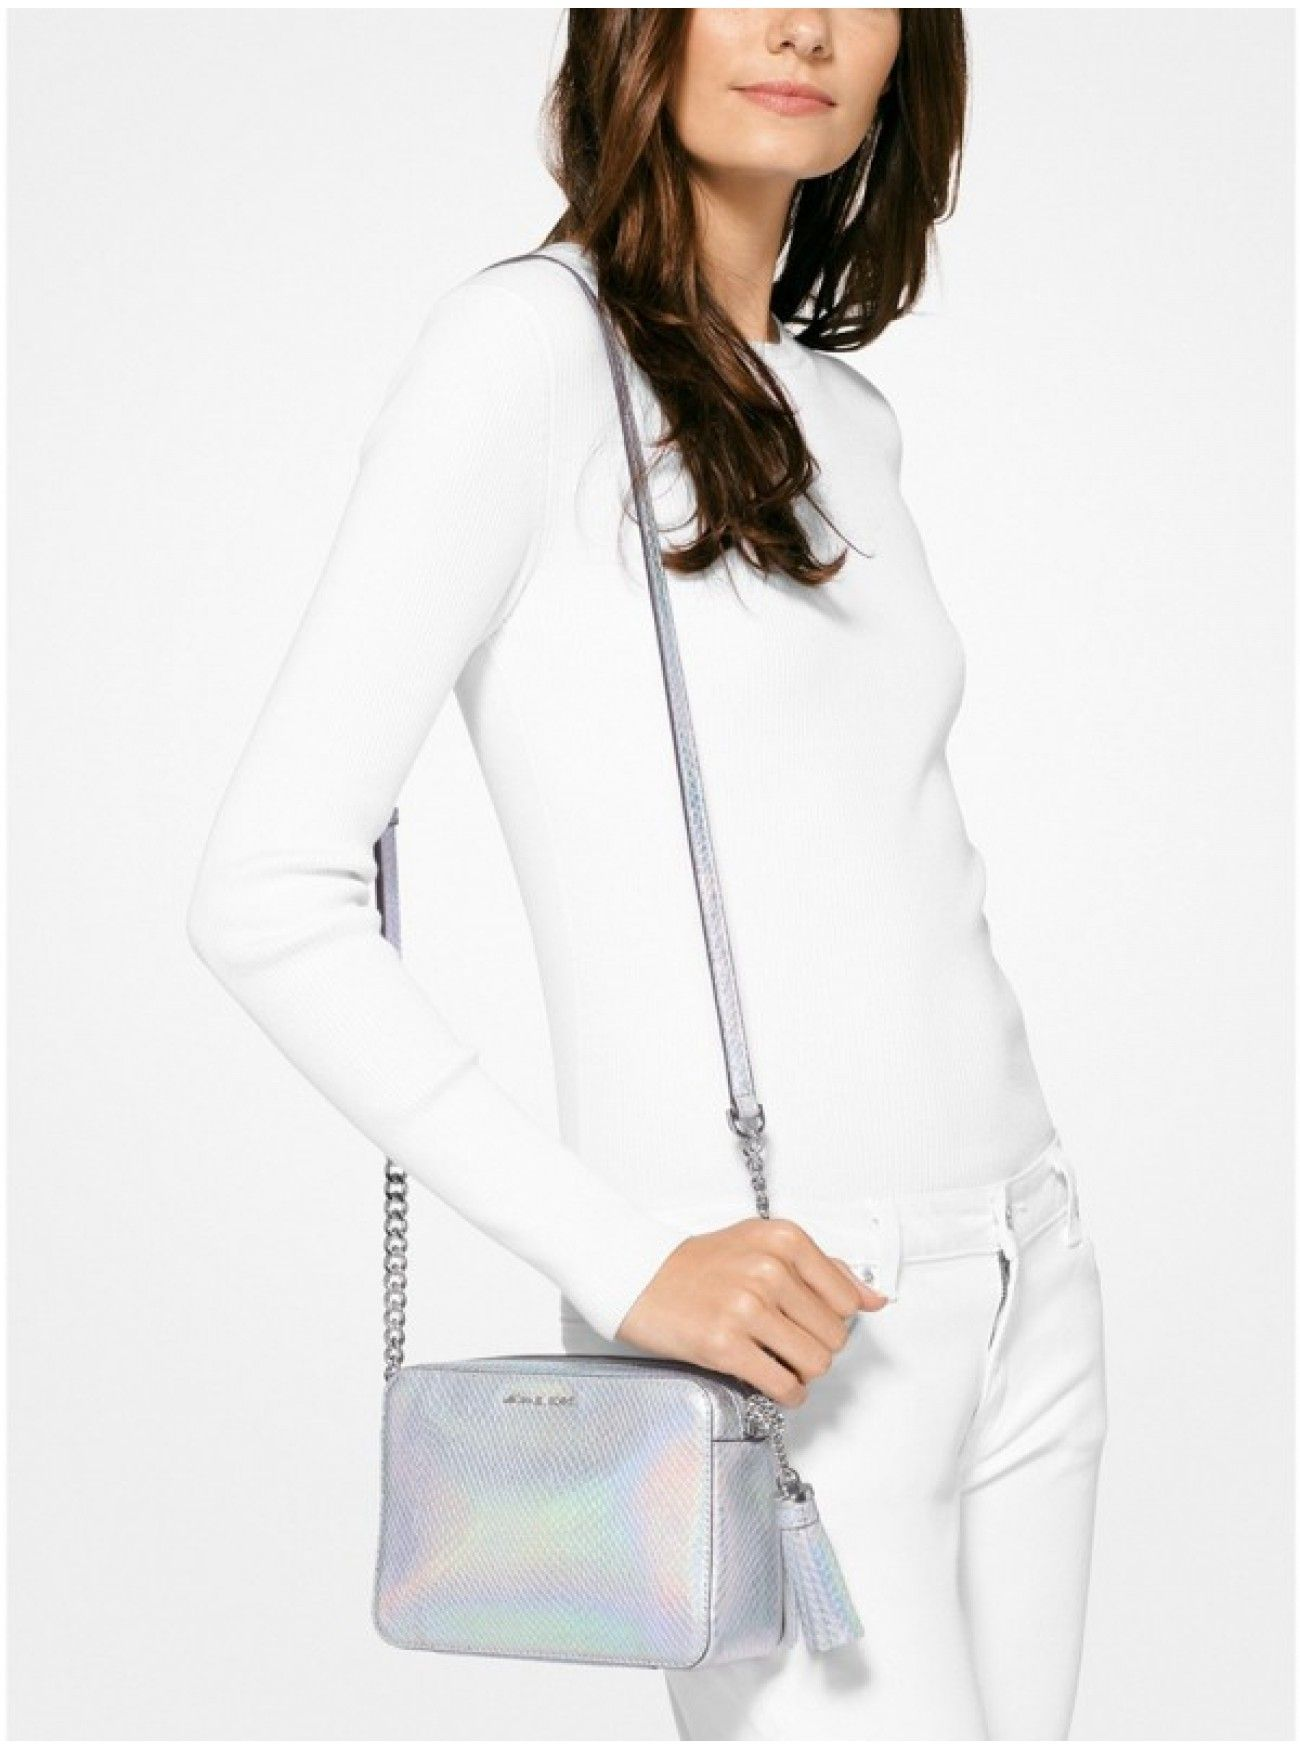 885605f54b21 Cheap MICHAEL Michael Kors Ginny Iridescent Embossed Leather Crossbody  RAINBOW Canada Online Sale